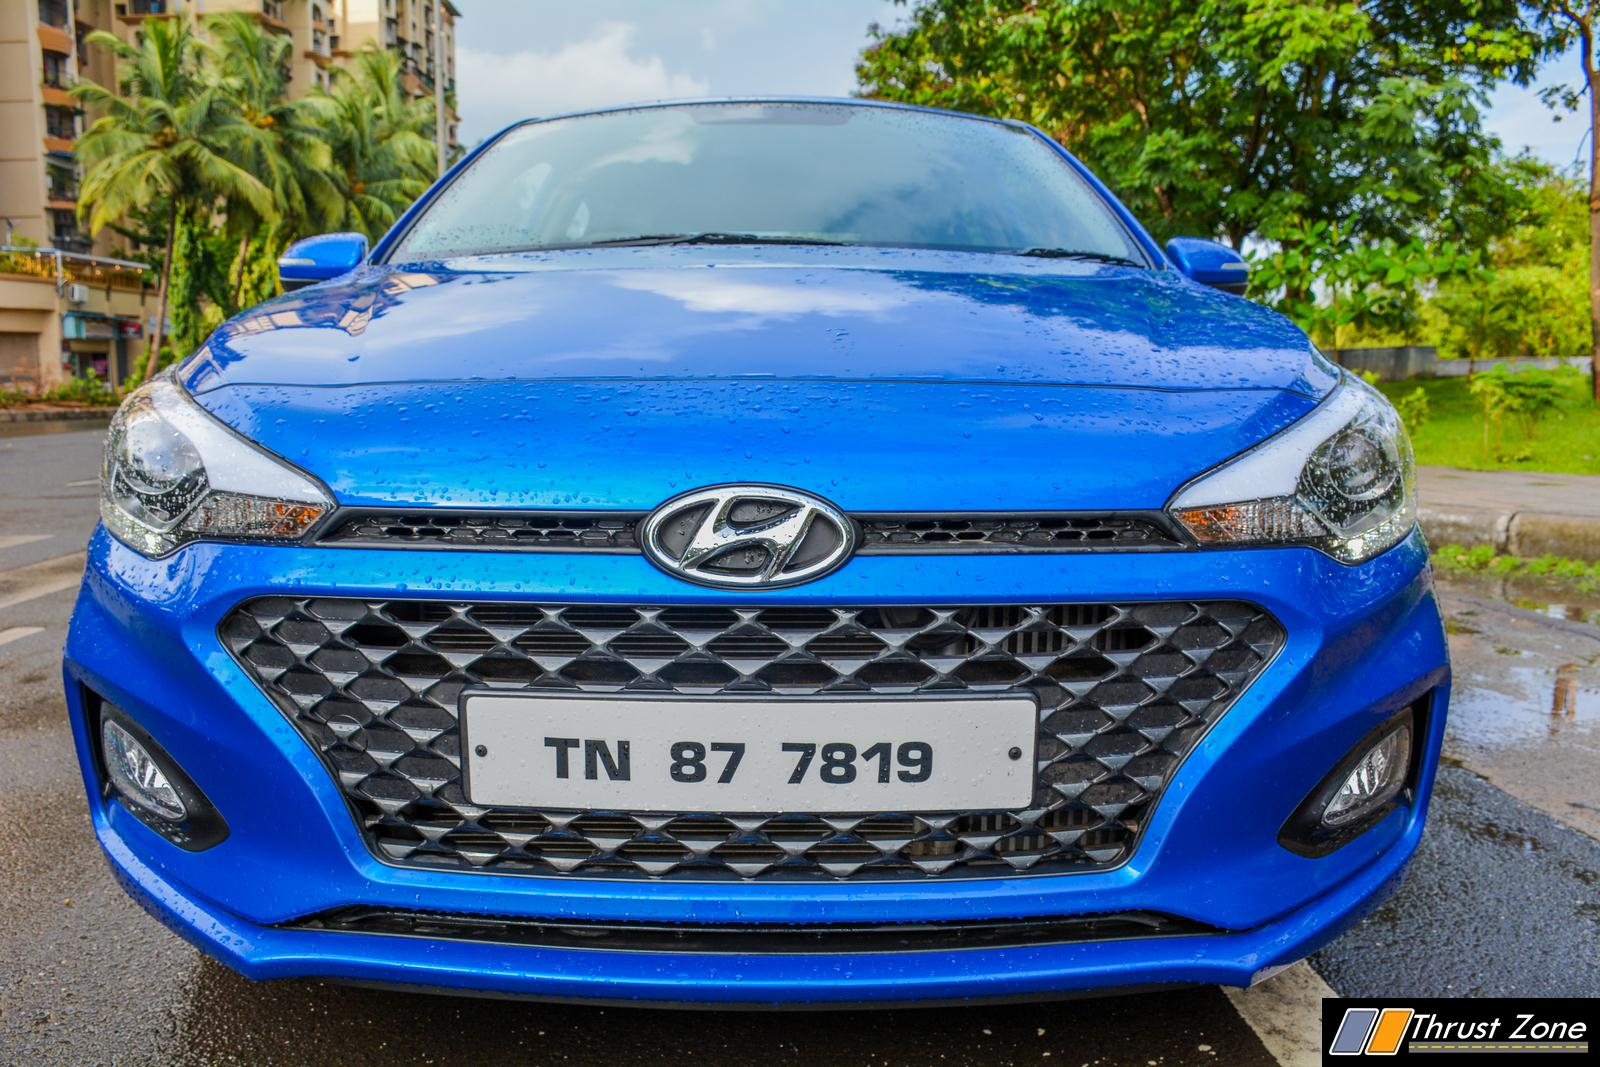 https://www.thrustzone.com/wp-content/uploads/2019/05/2019-hyundai-i20-facelift-review-21.jpg